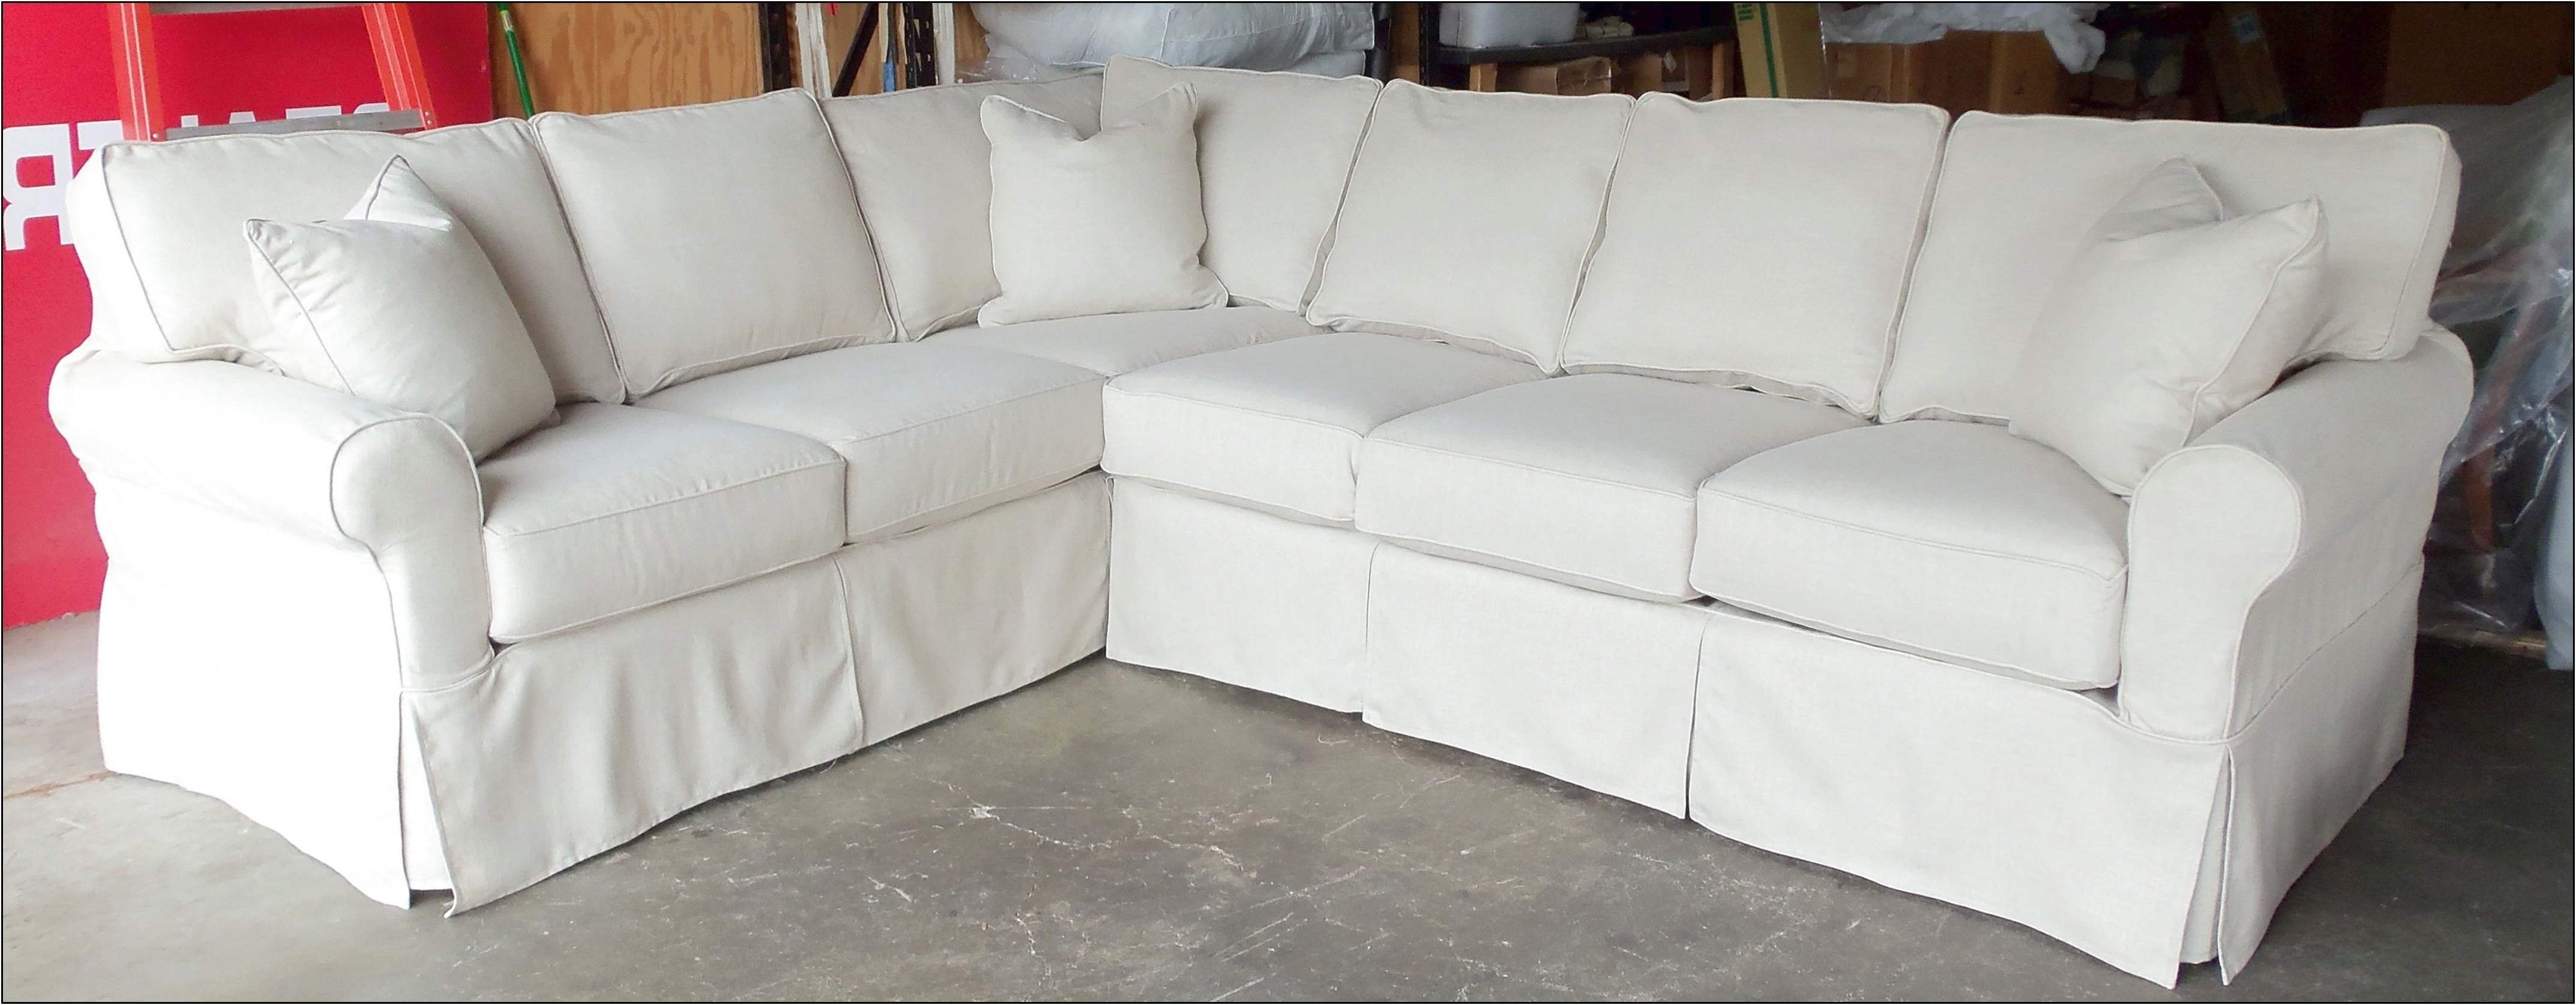 Abowloforanges Pertaining To Removable Covers Sectional Sofas (Gallery 7 of 20)